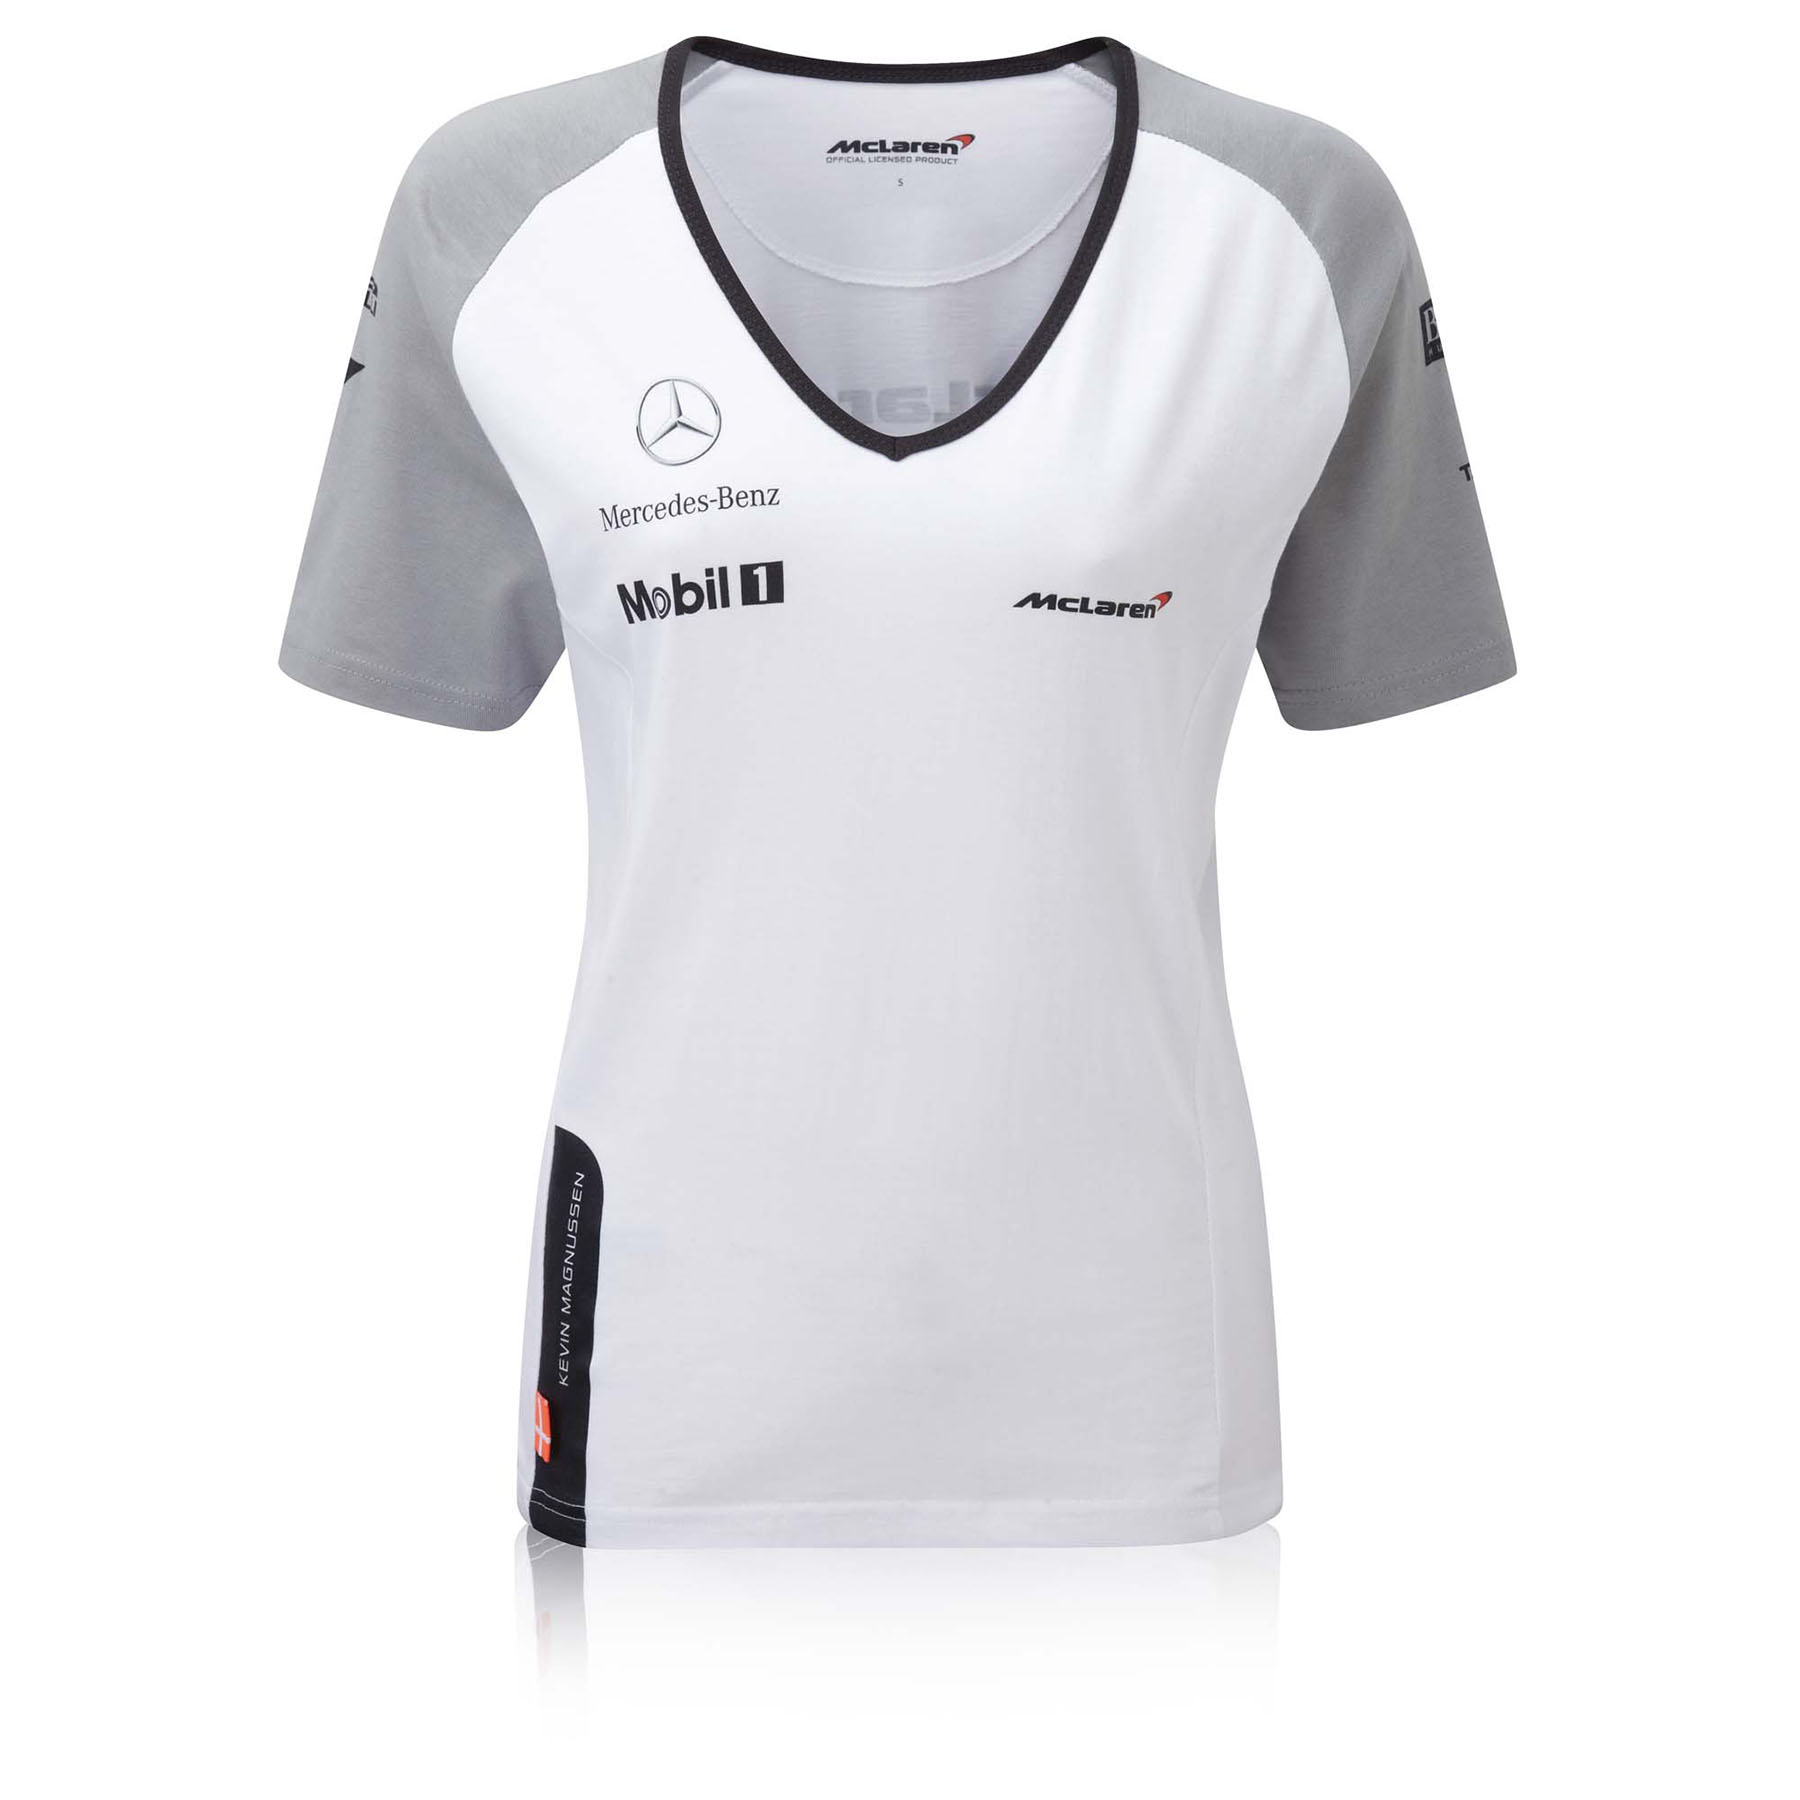 Team McLaren Magnussen Cotton T-Shirt - Womens